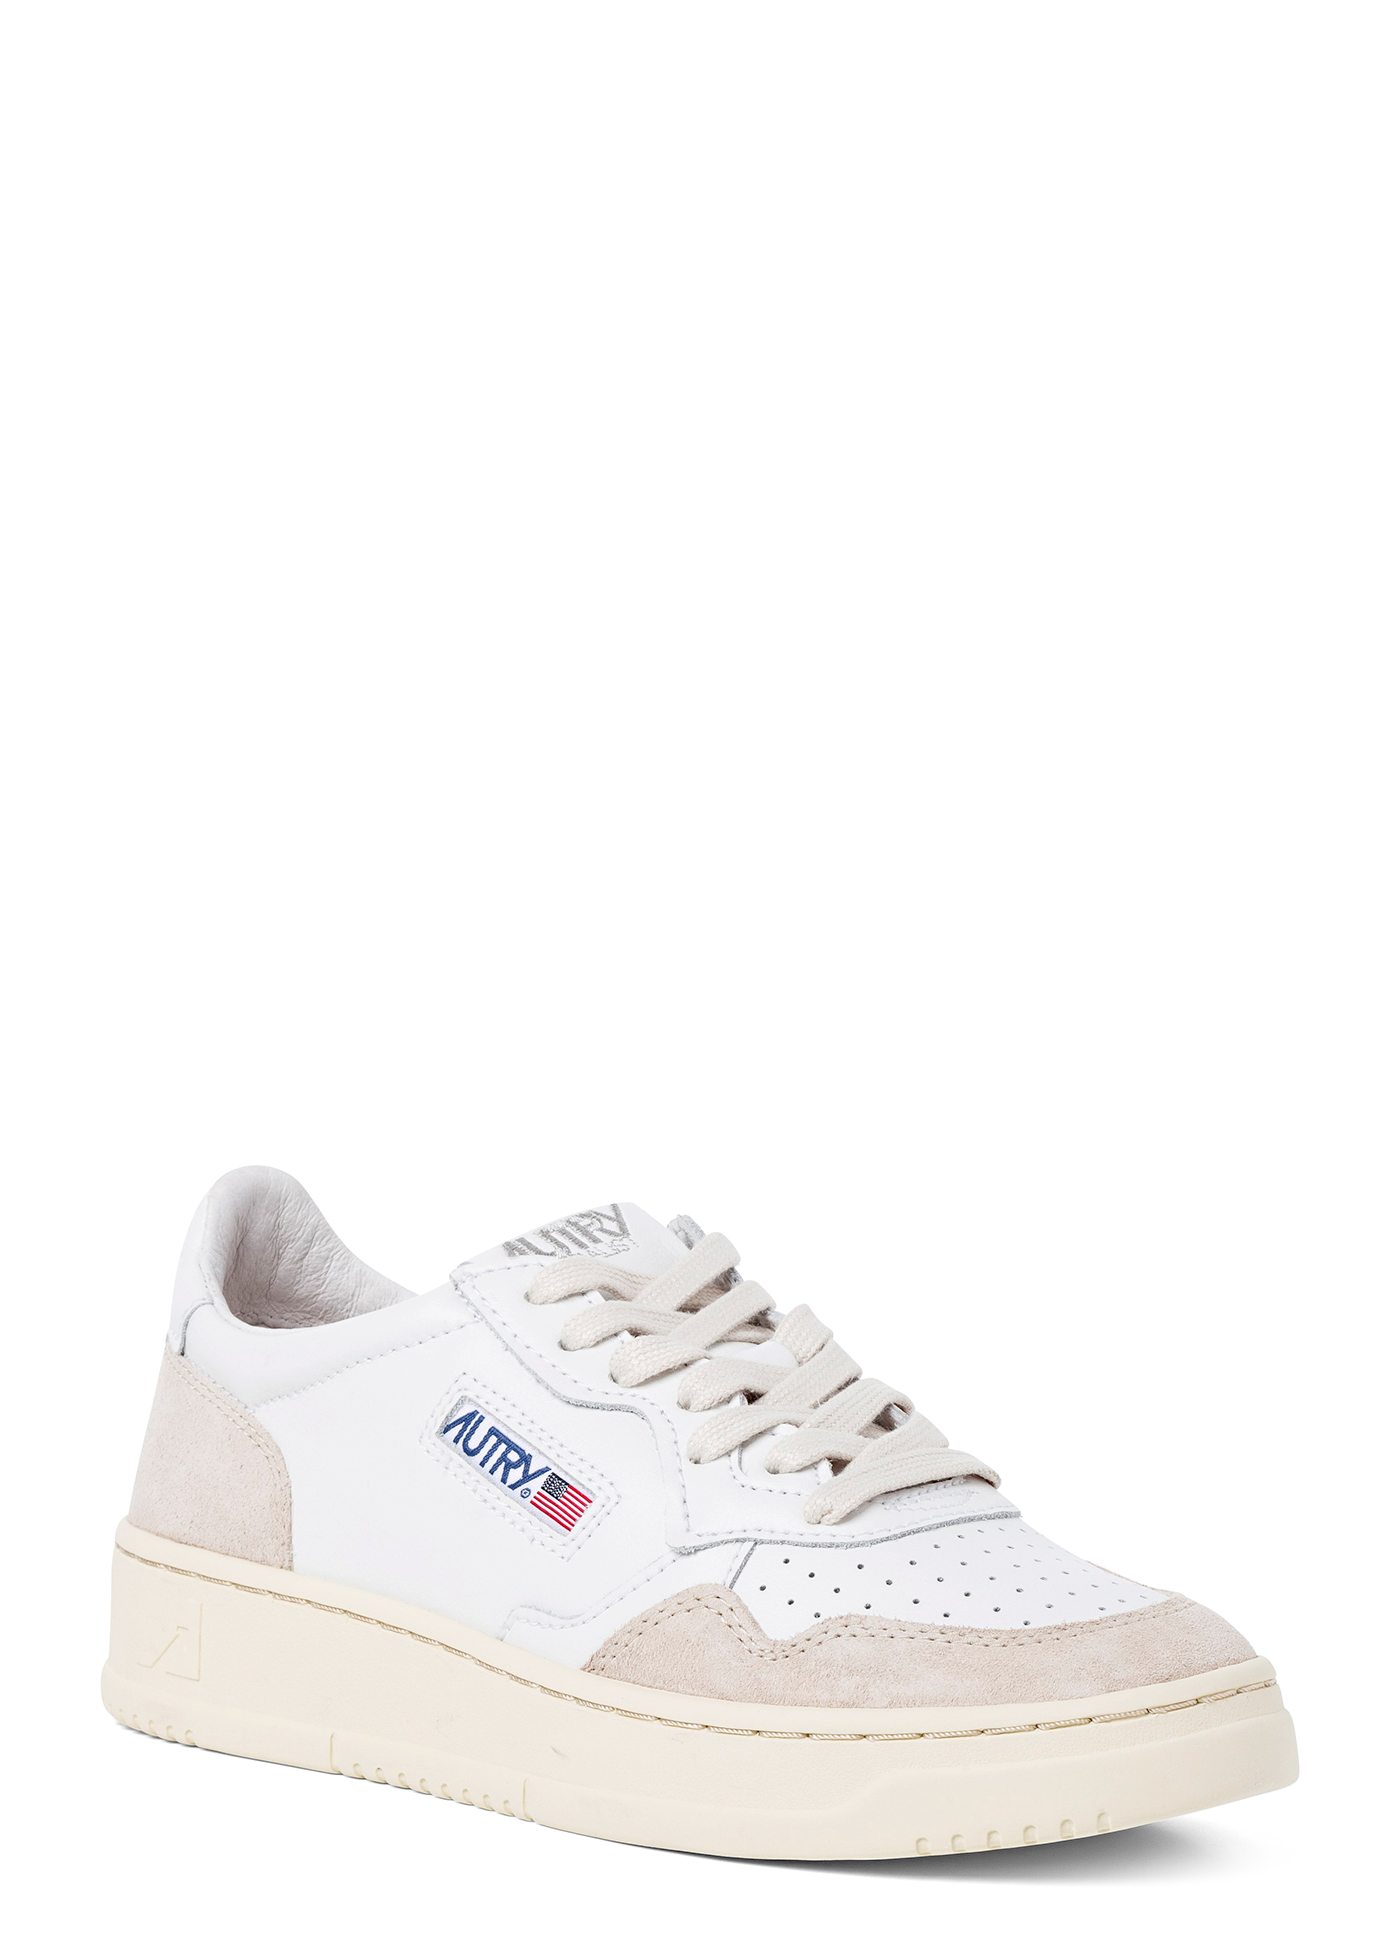 Autry 01 Low Wom Suede image number 1